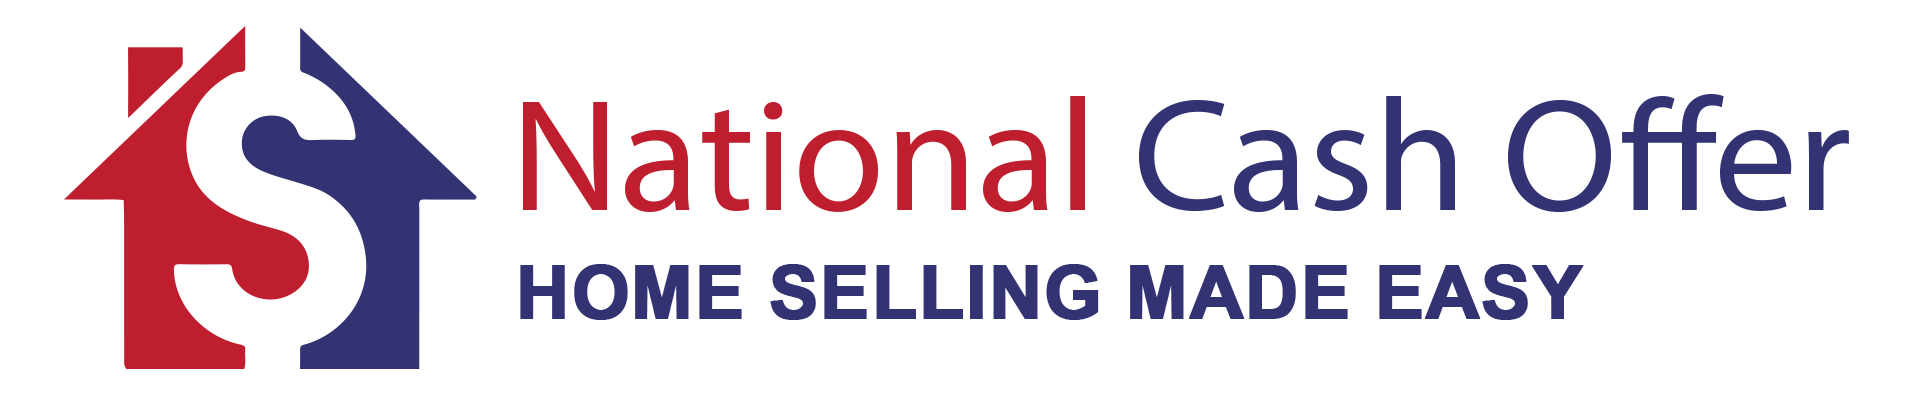 National Cash Offer logo